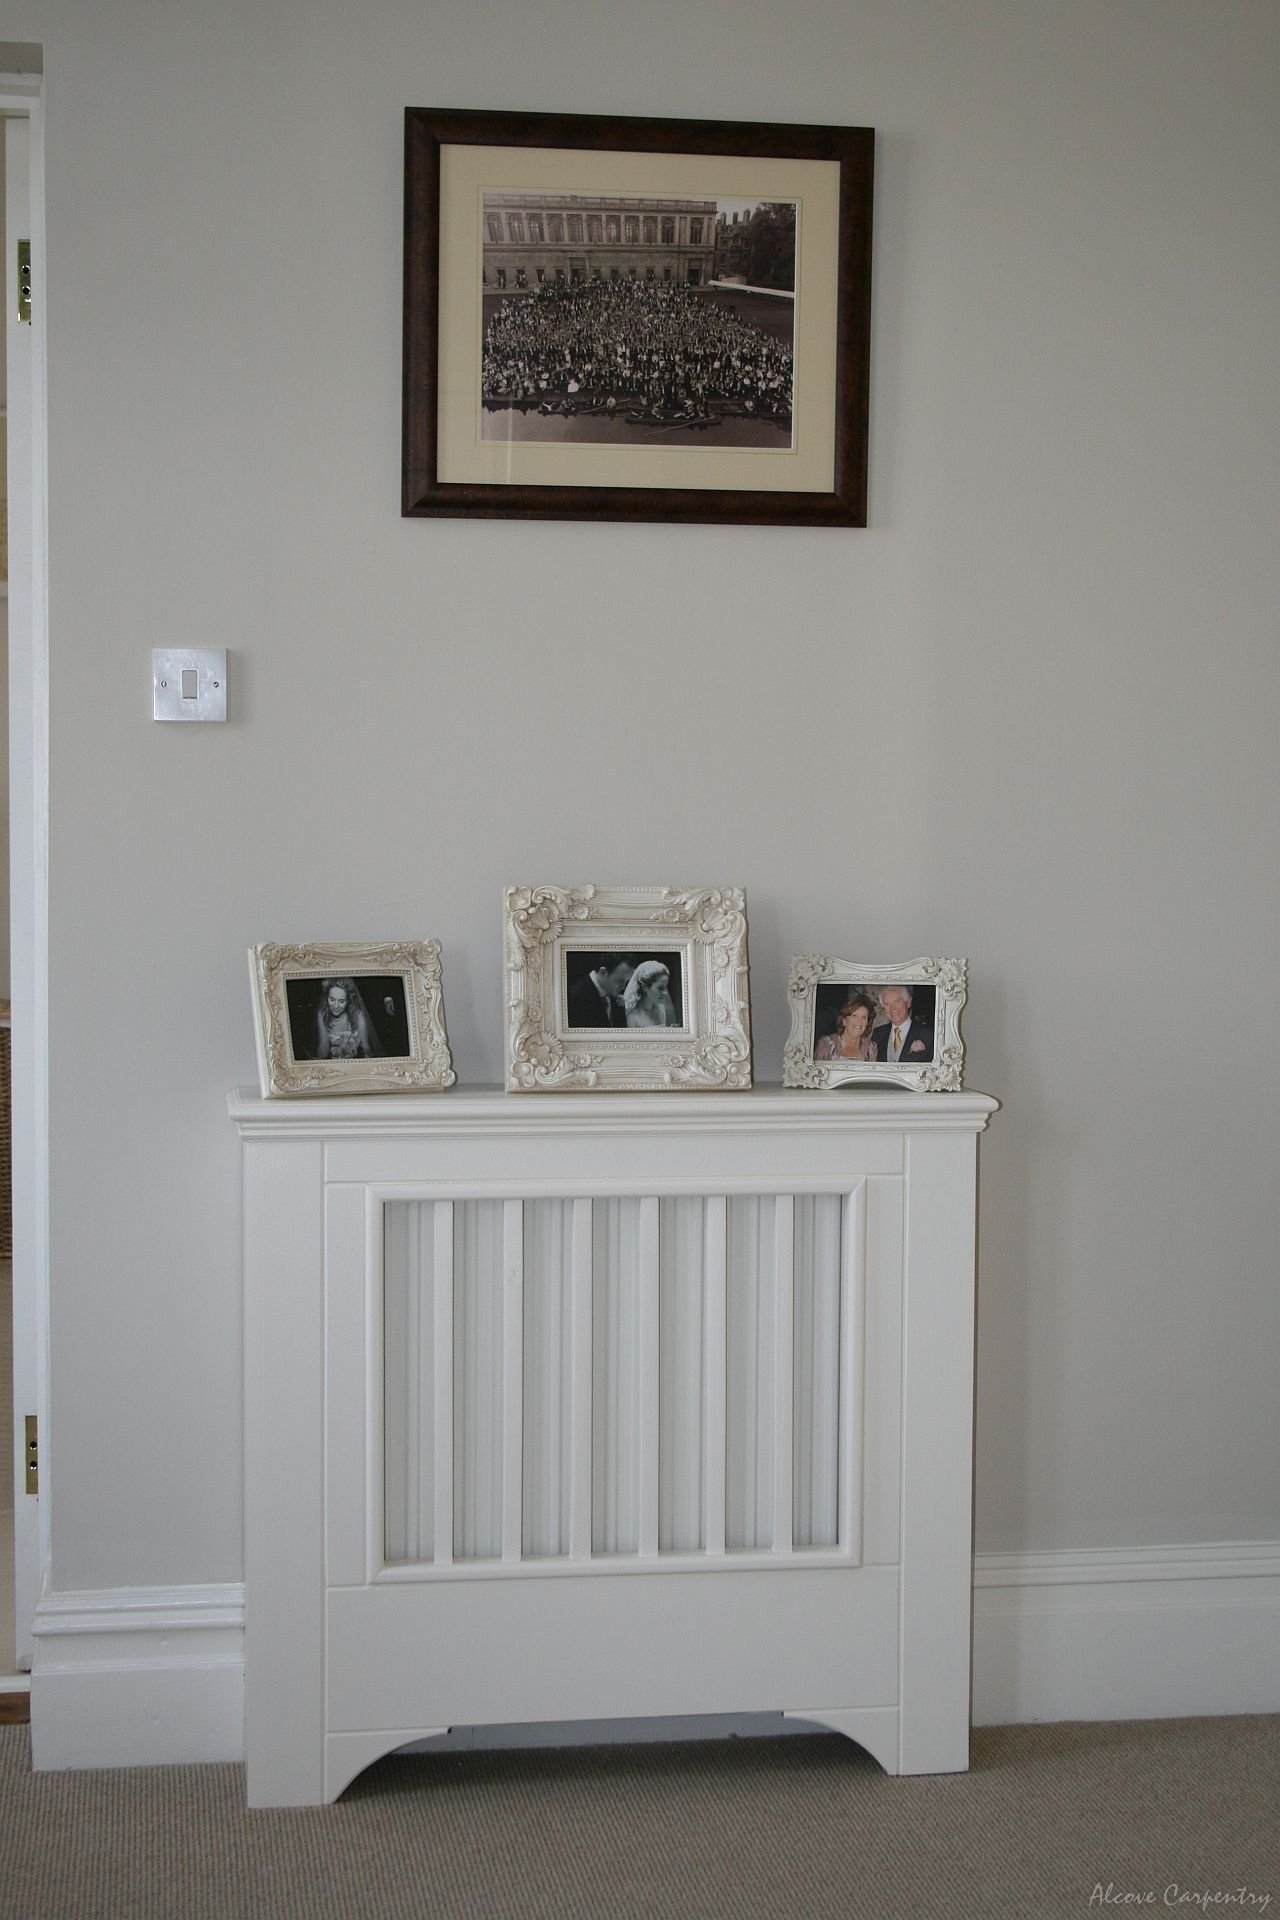 Radiator Covers Alcove Carpentry In Radiator Cupboards (View 9 of 12)